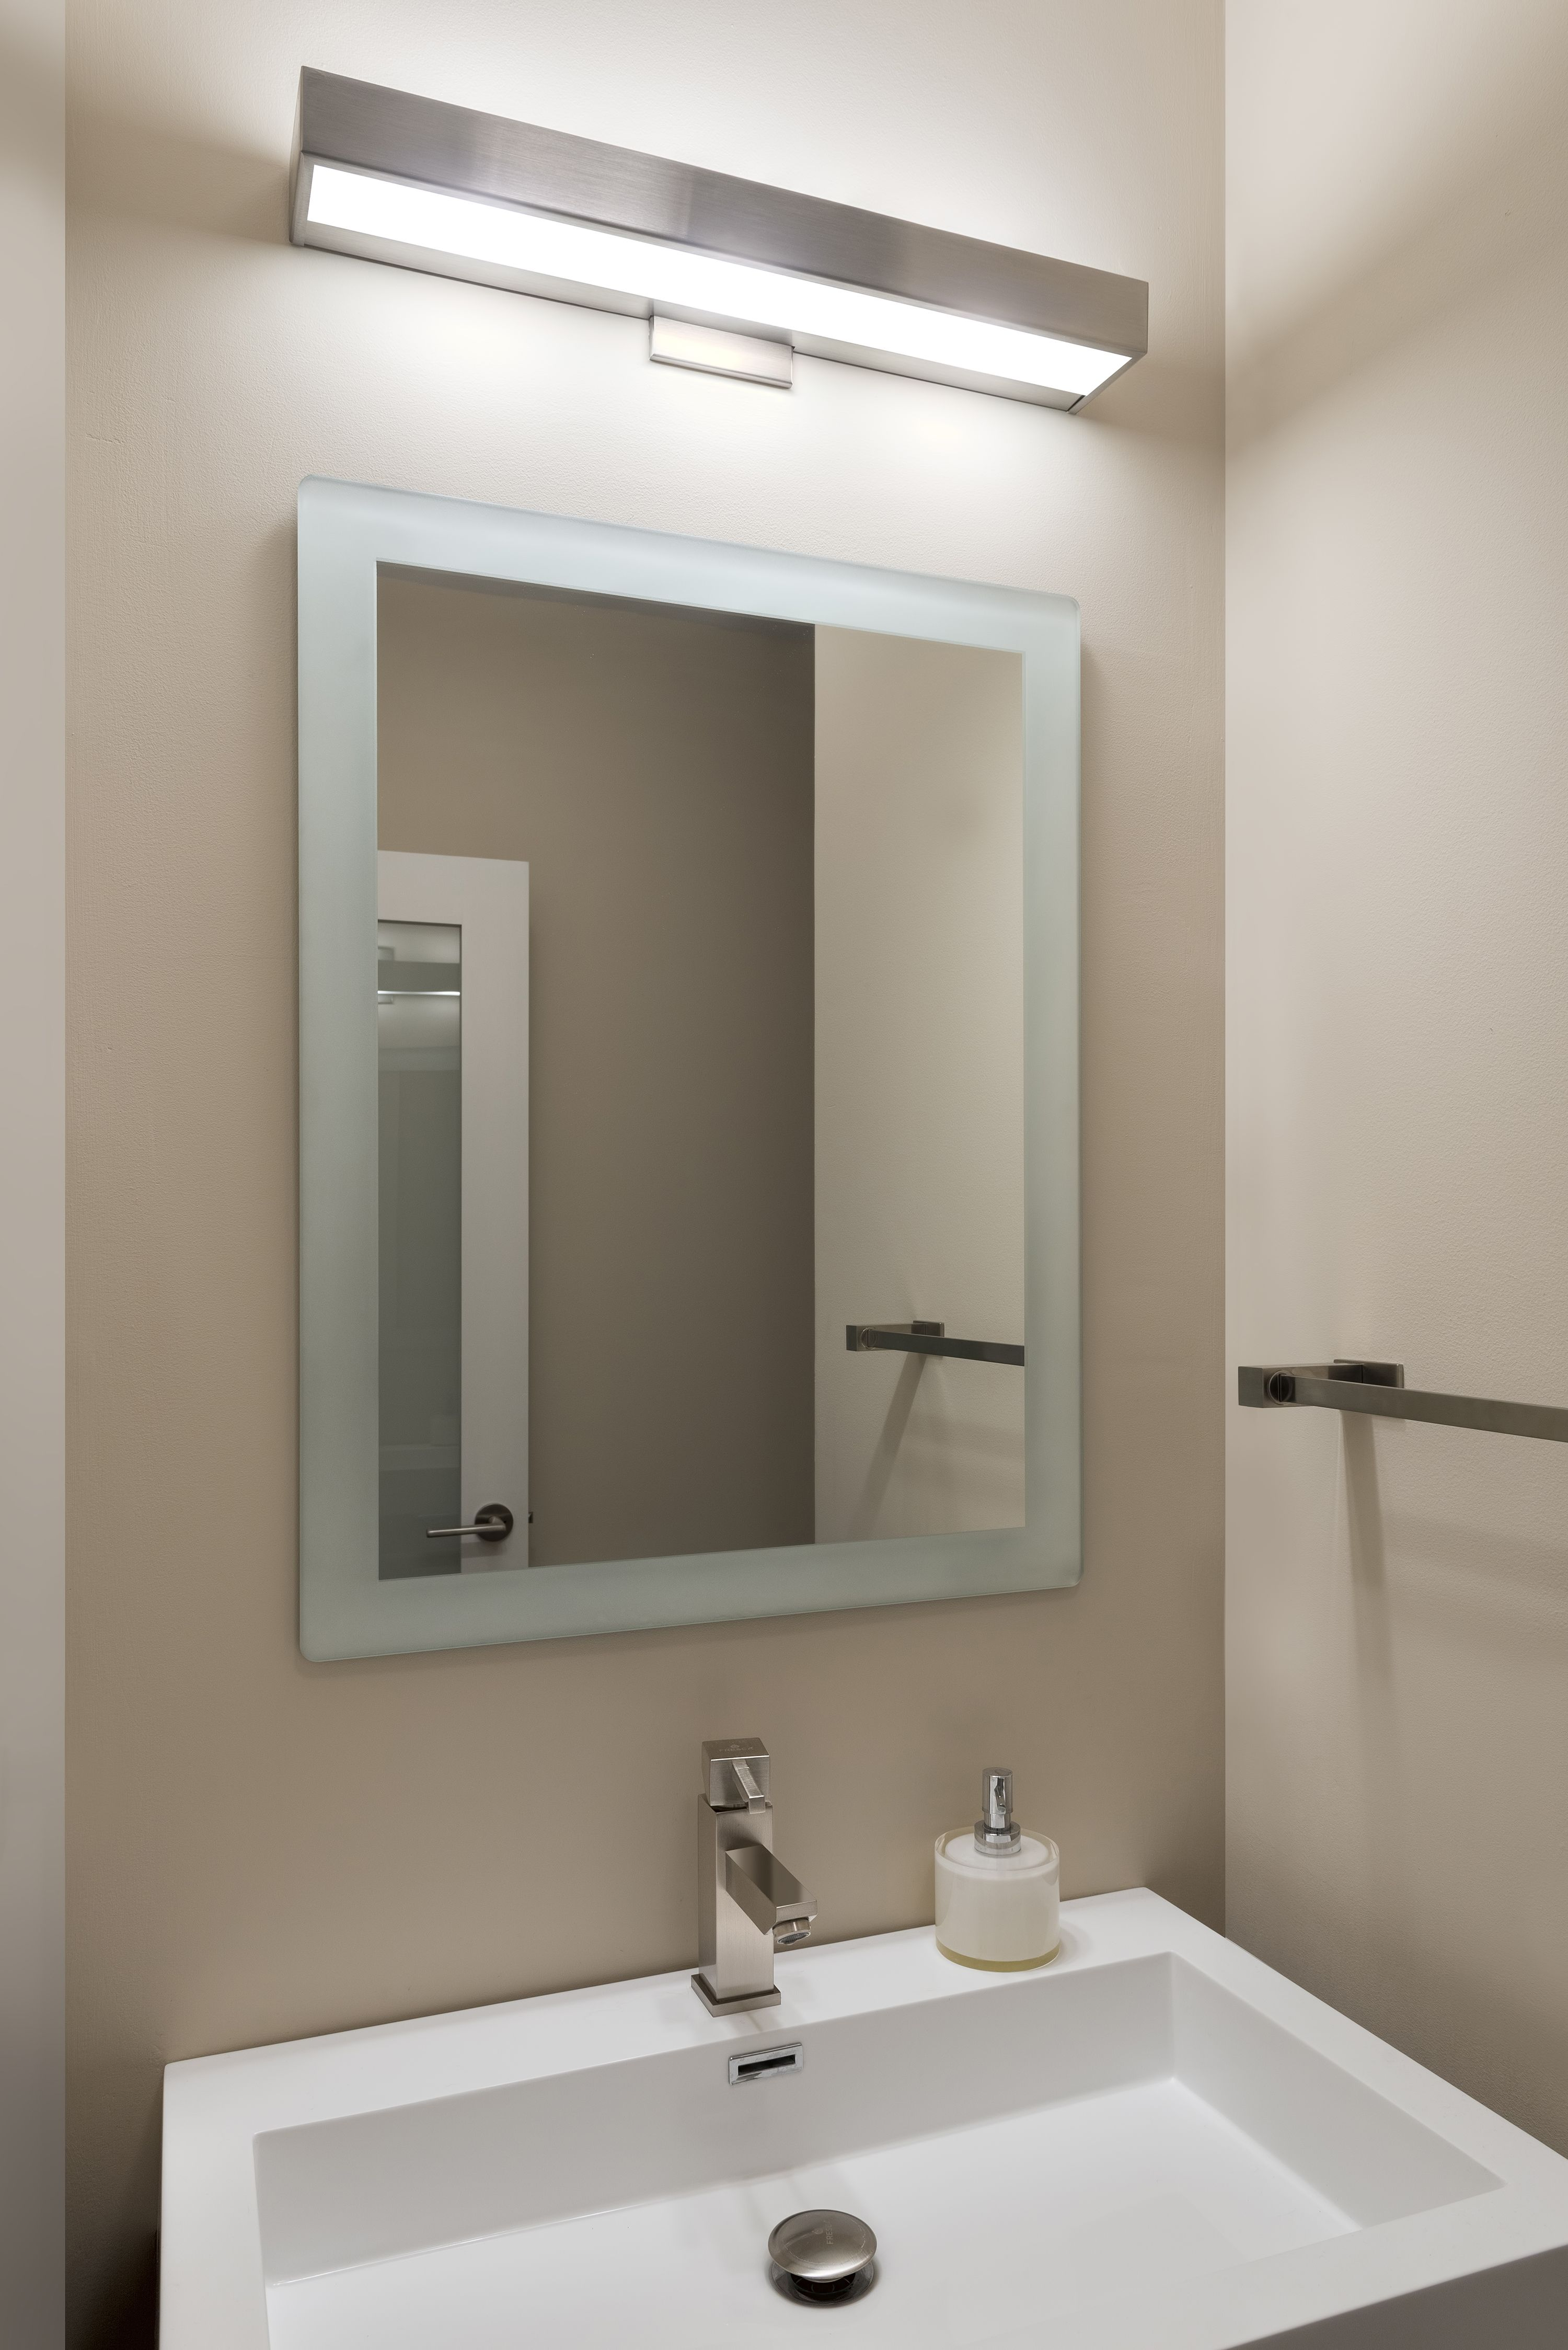 ideal bathroom vanity lighting design ideas. The Alpha LED Creates Great Task Lighting Ideal For Bathrooms And Vanities | Unique Bathroom Vanity Design Ideas L